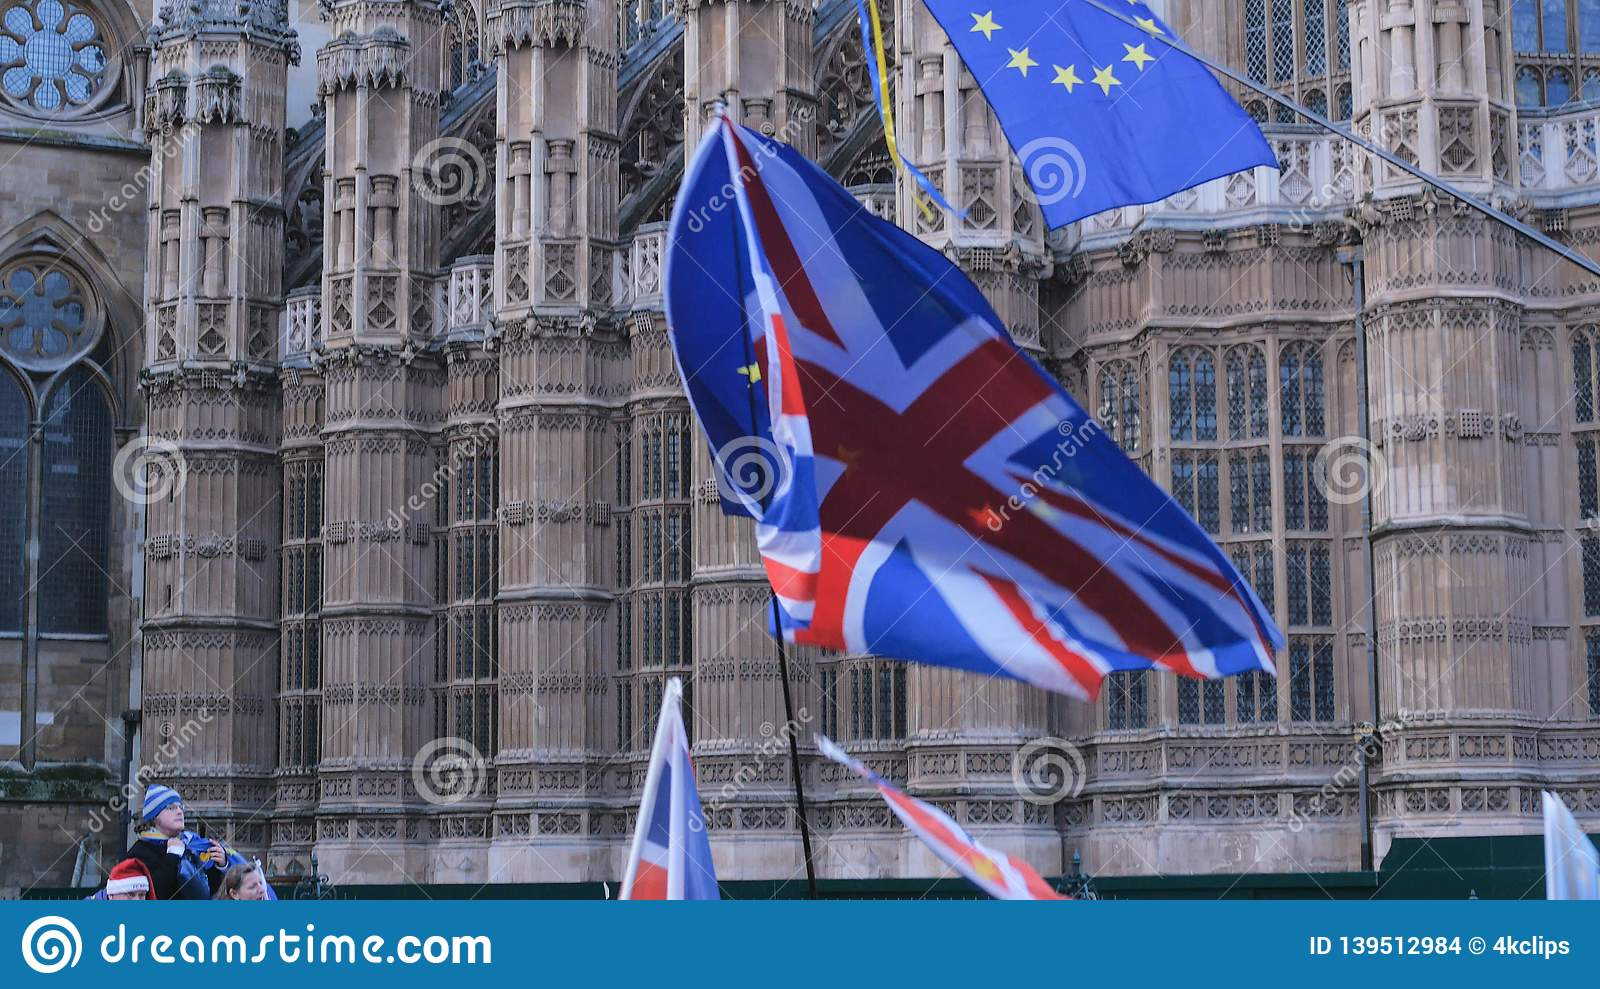 Brexit protest march and demonstration in London - LONDON, ENGLAND - DECEMBER 15, 2018